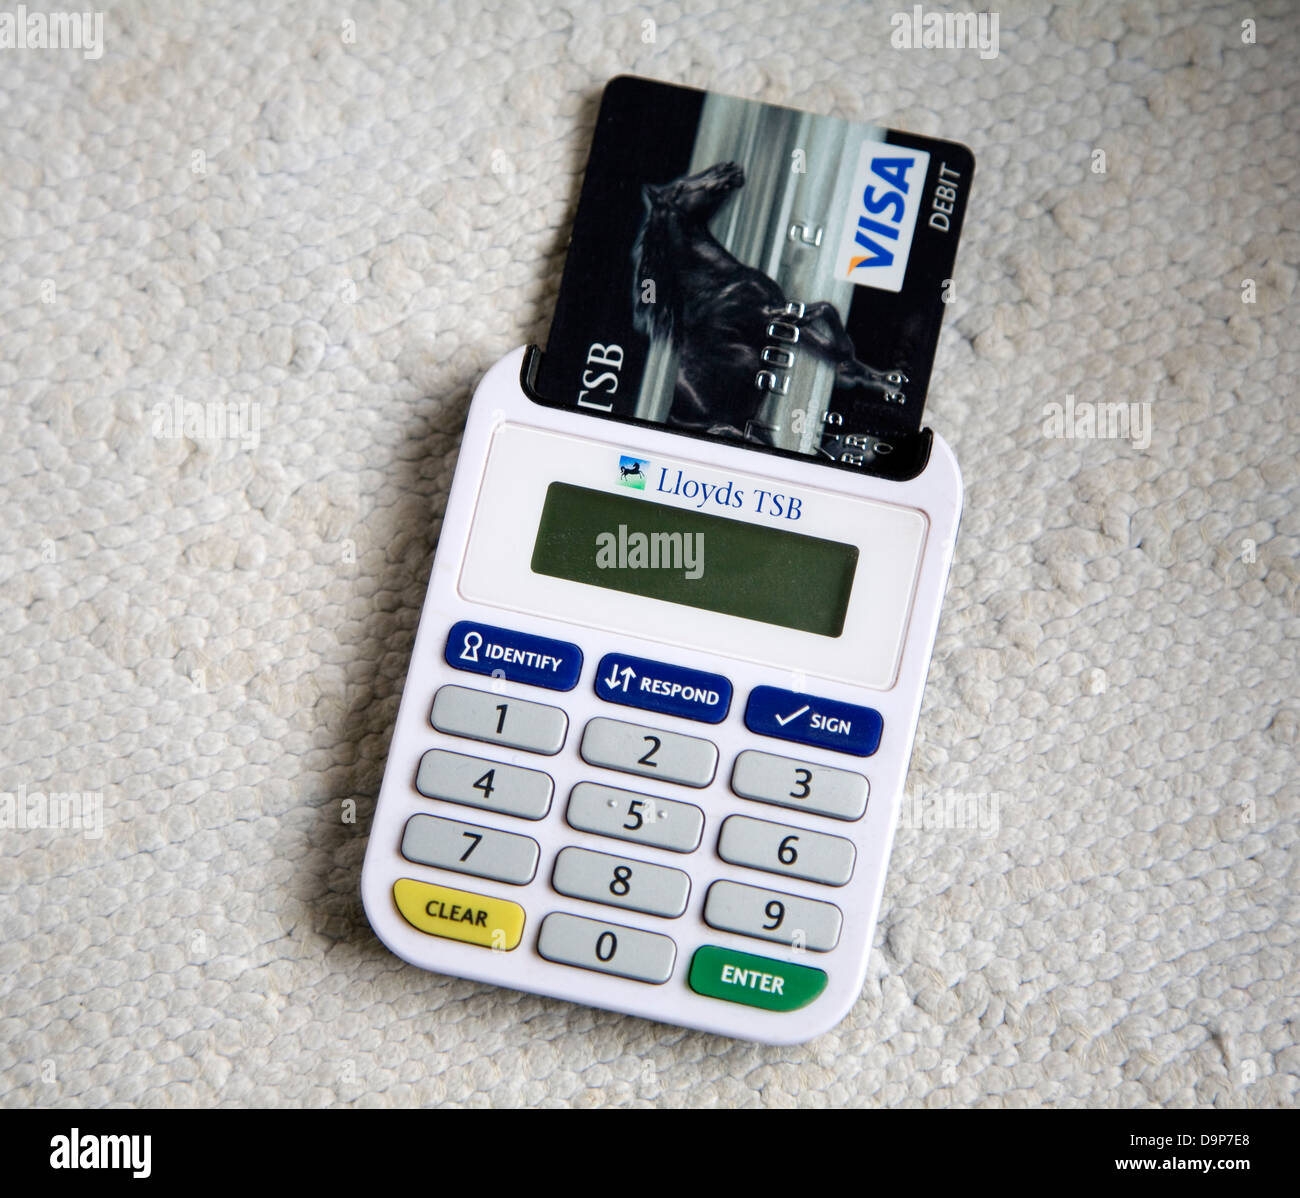 Ezio Lloyds Bank card reader online banking security device Stock